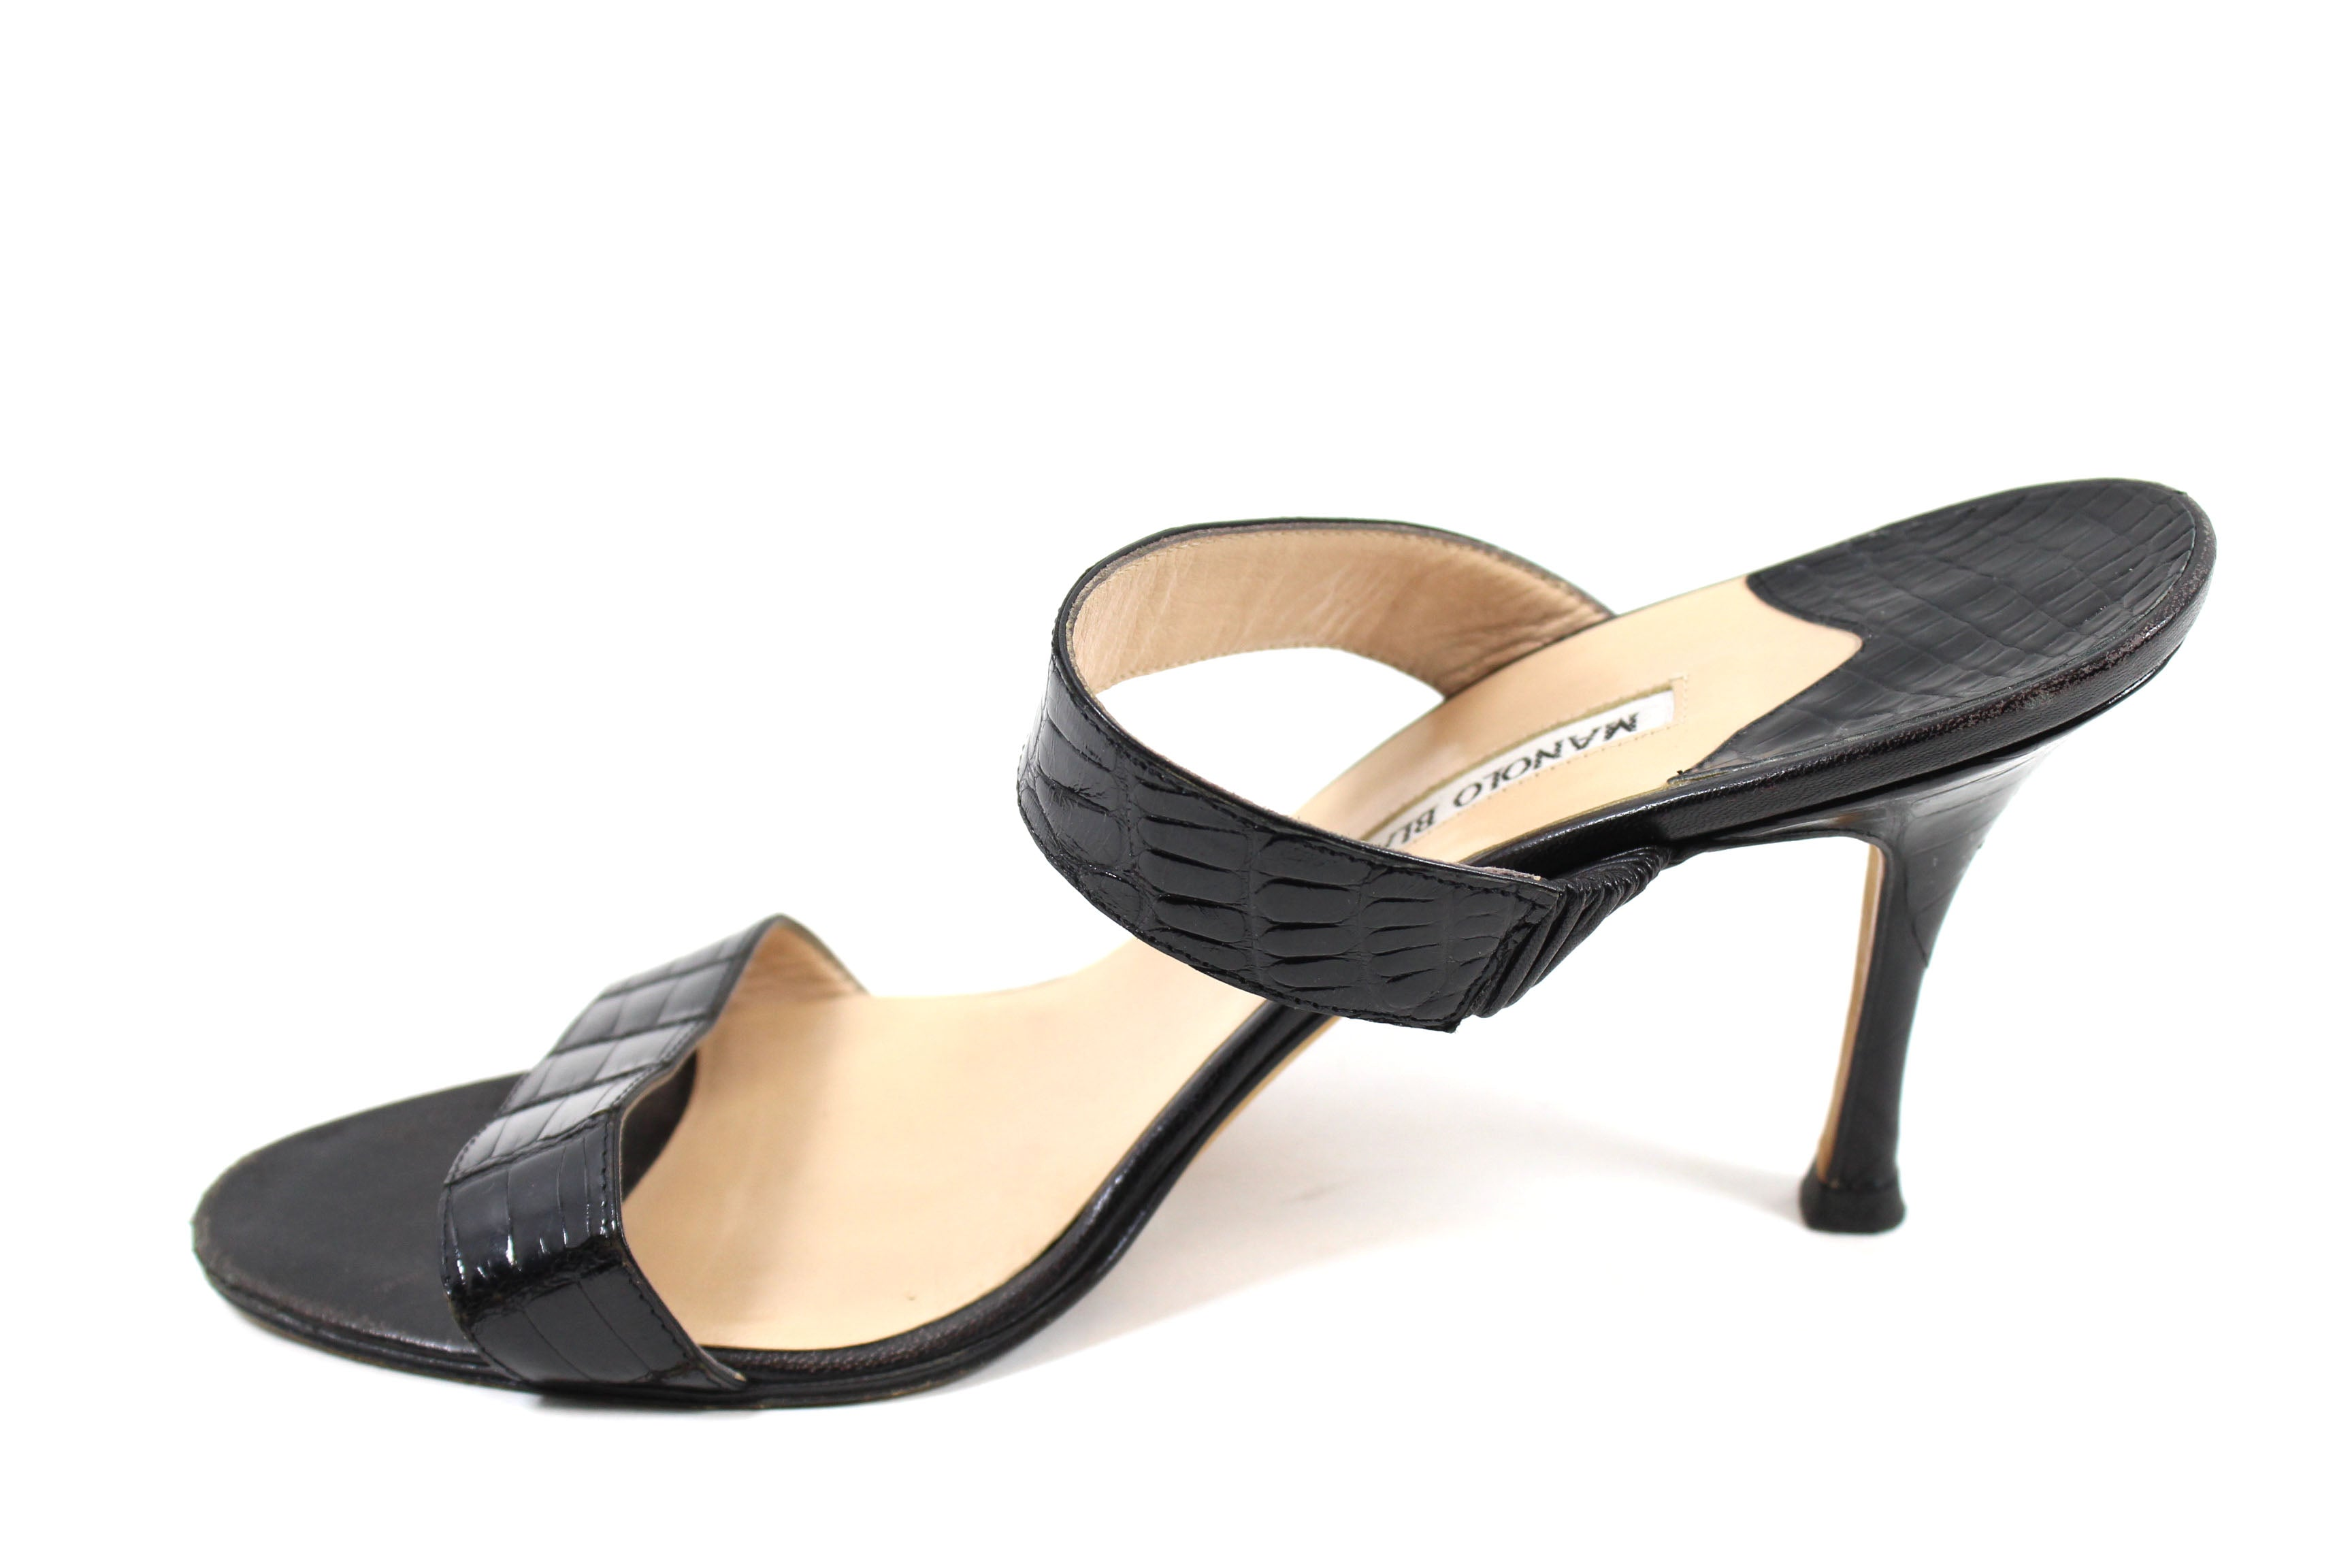 d3da944ca2 'Sold' Manolo Blahnik Black Crocodile Dual Strap Sandals (Size 40.5) –  Encore Resale.com